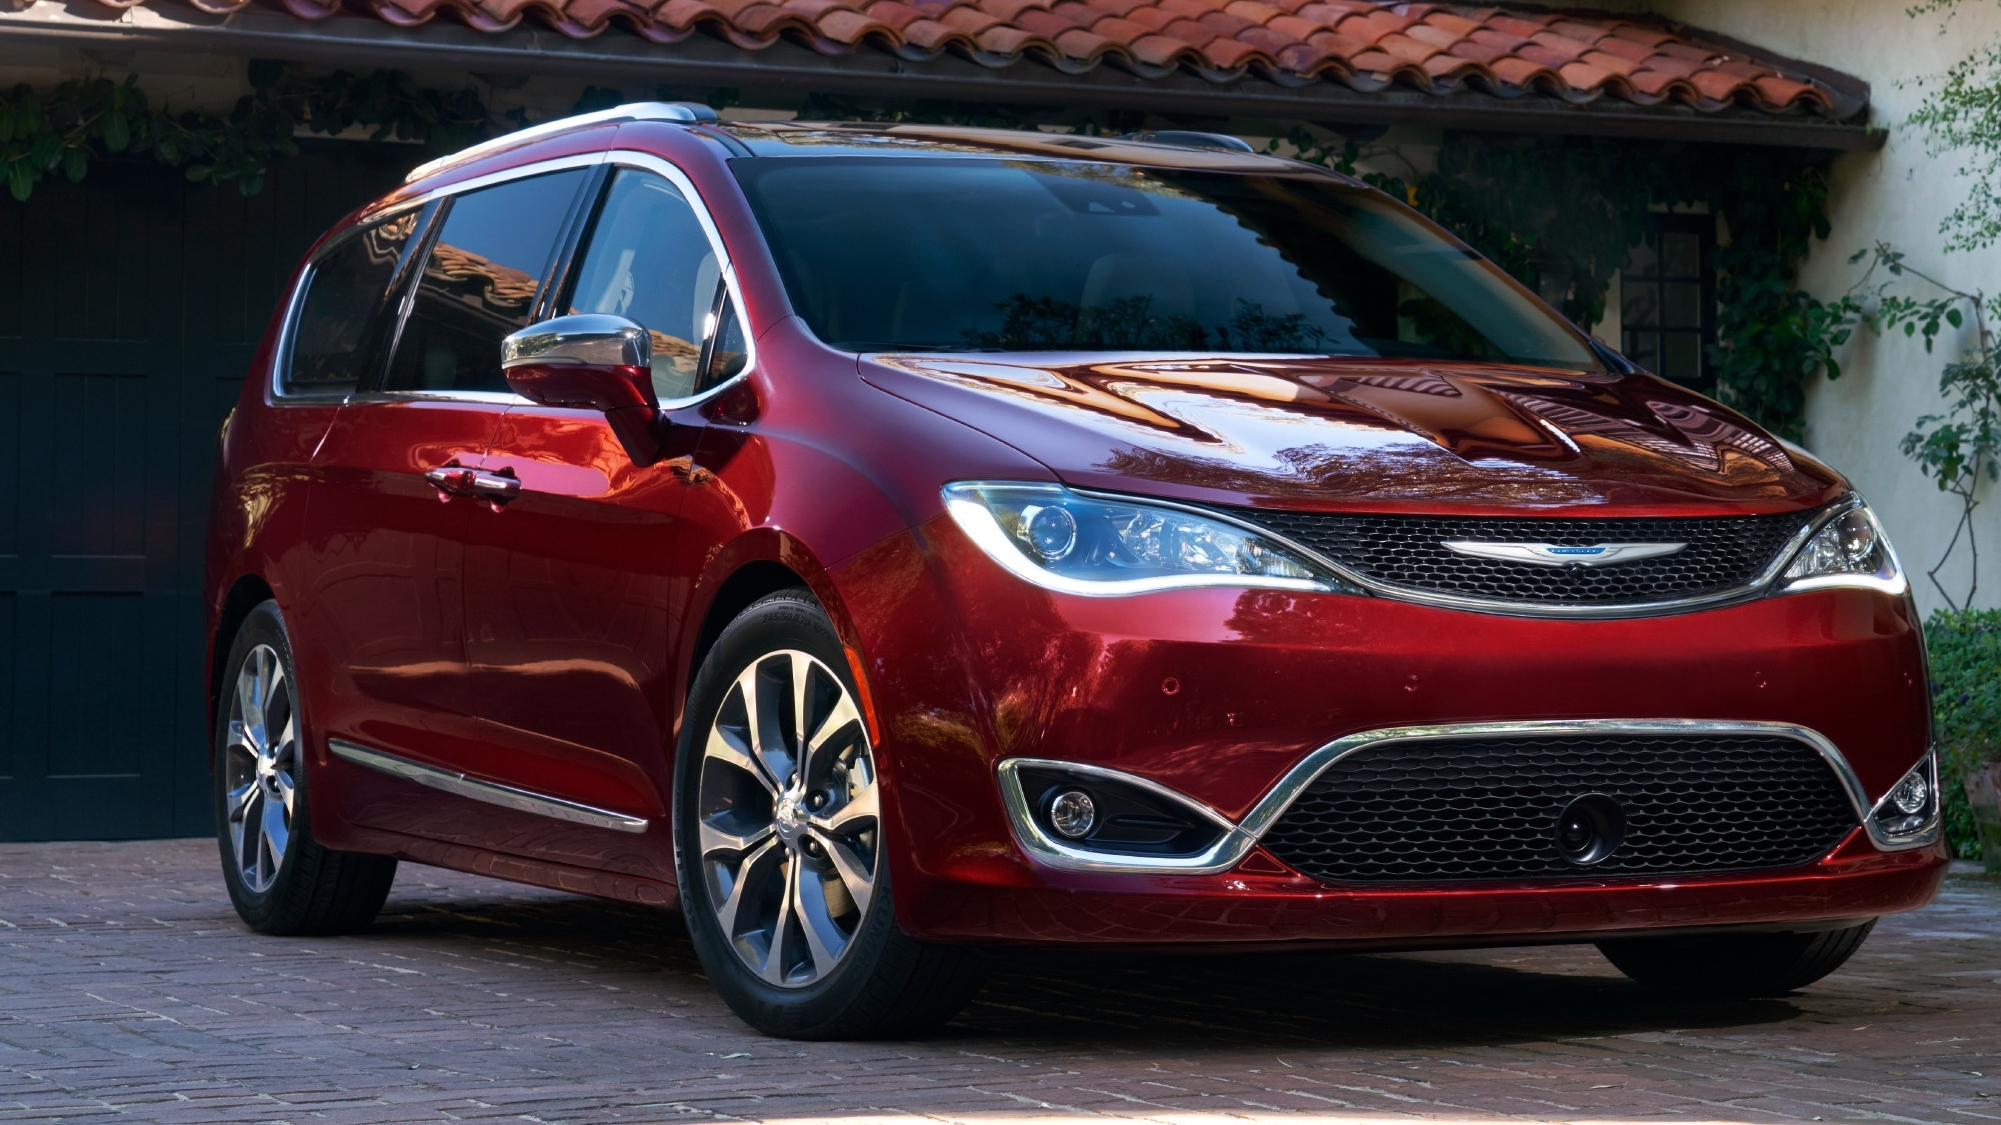 2017 Chrysler Pacifica Gallery 661435 Top Speed